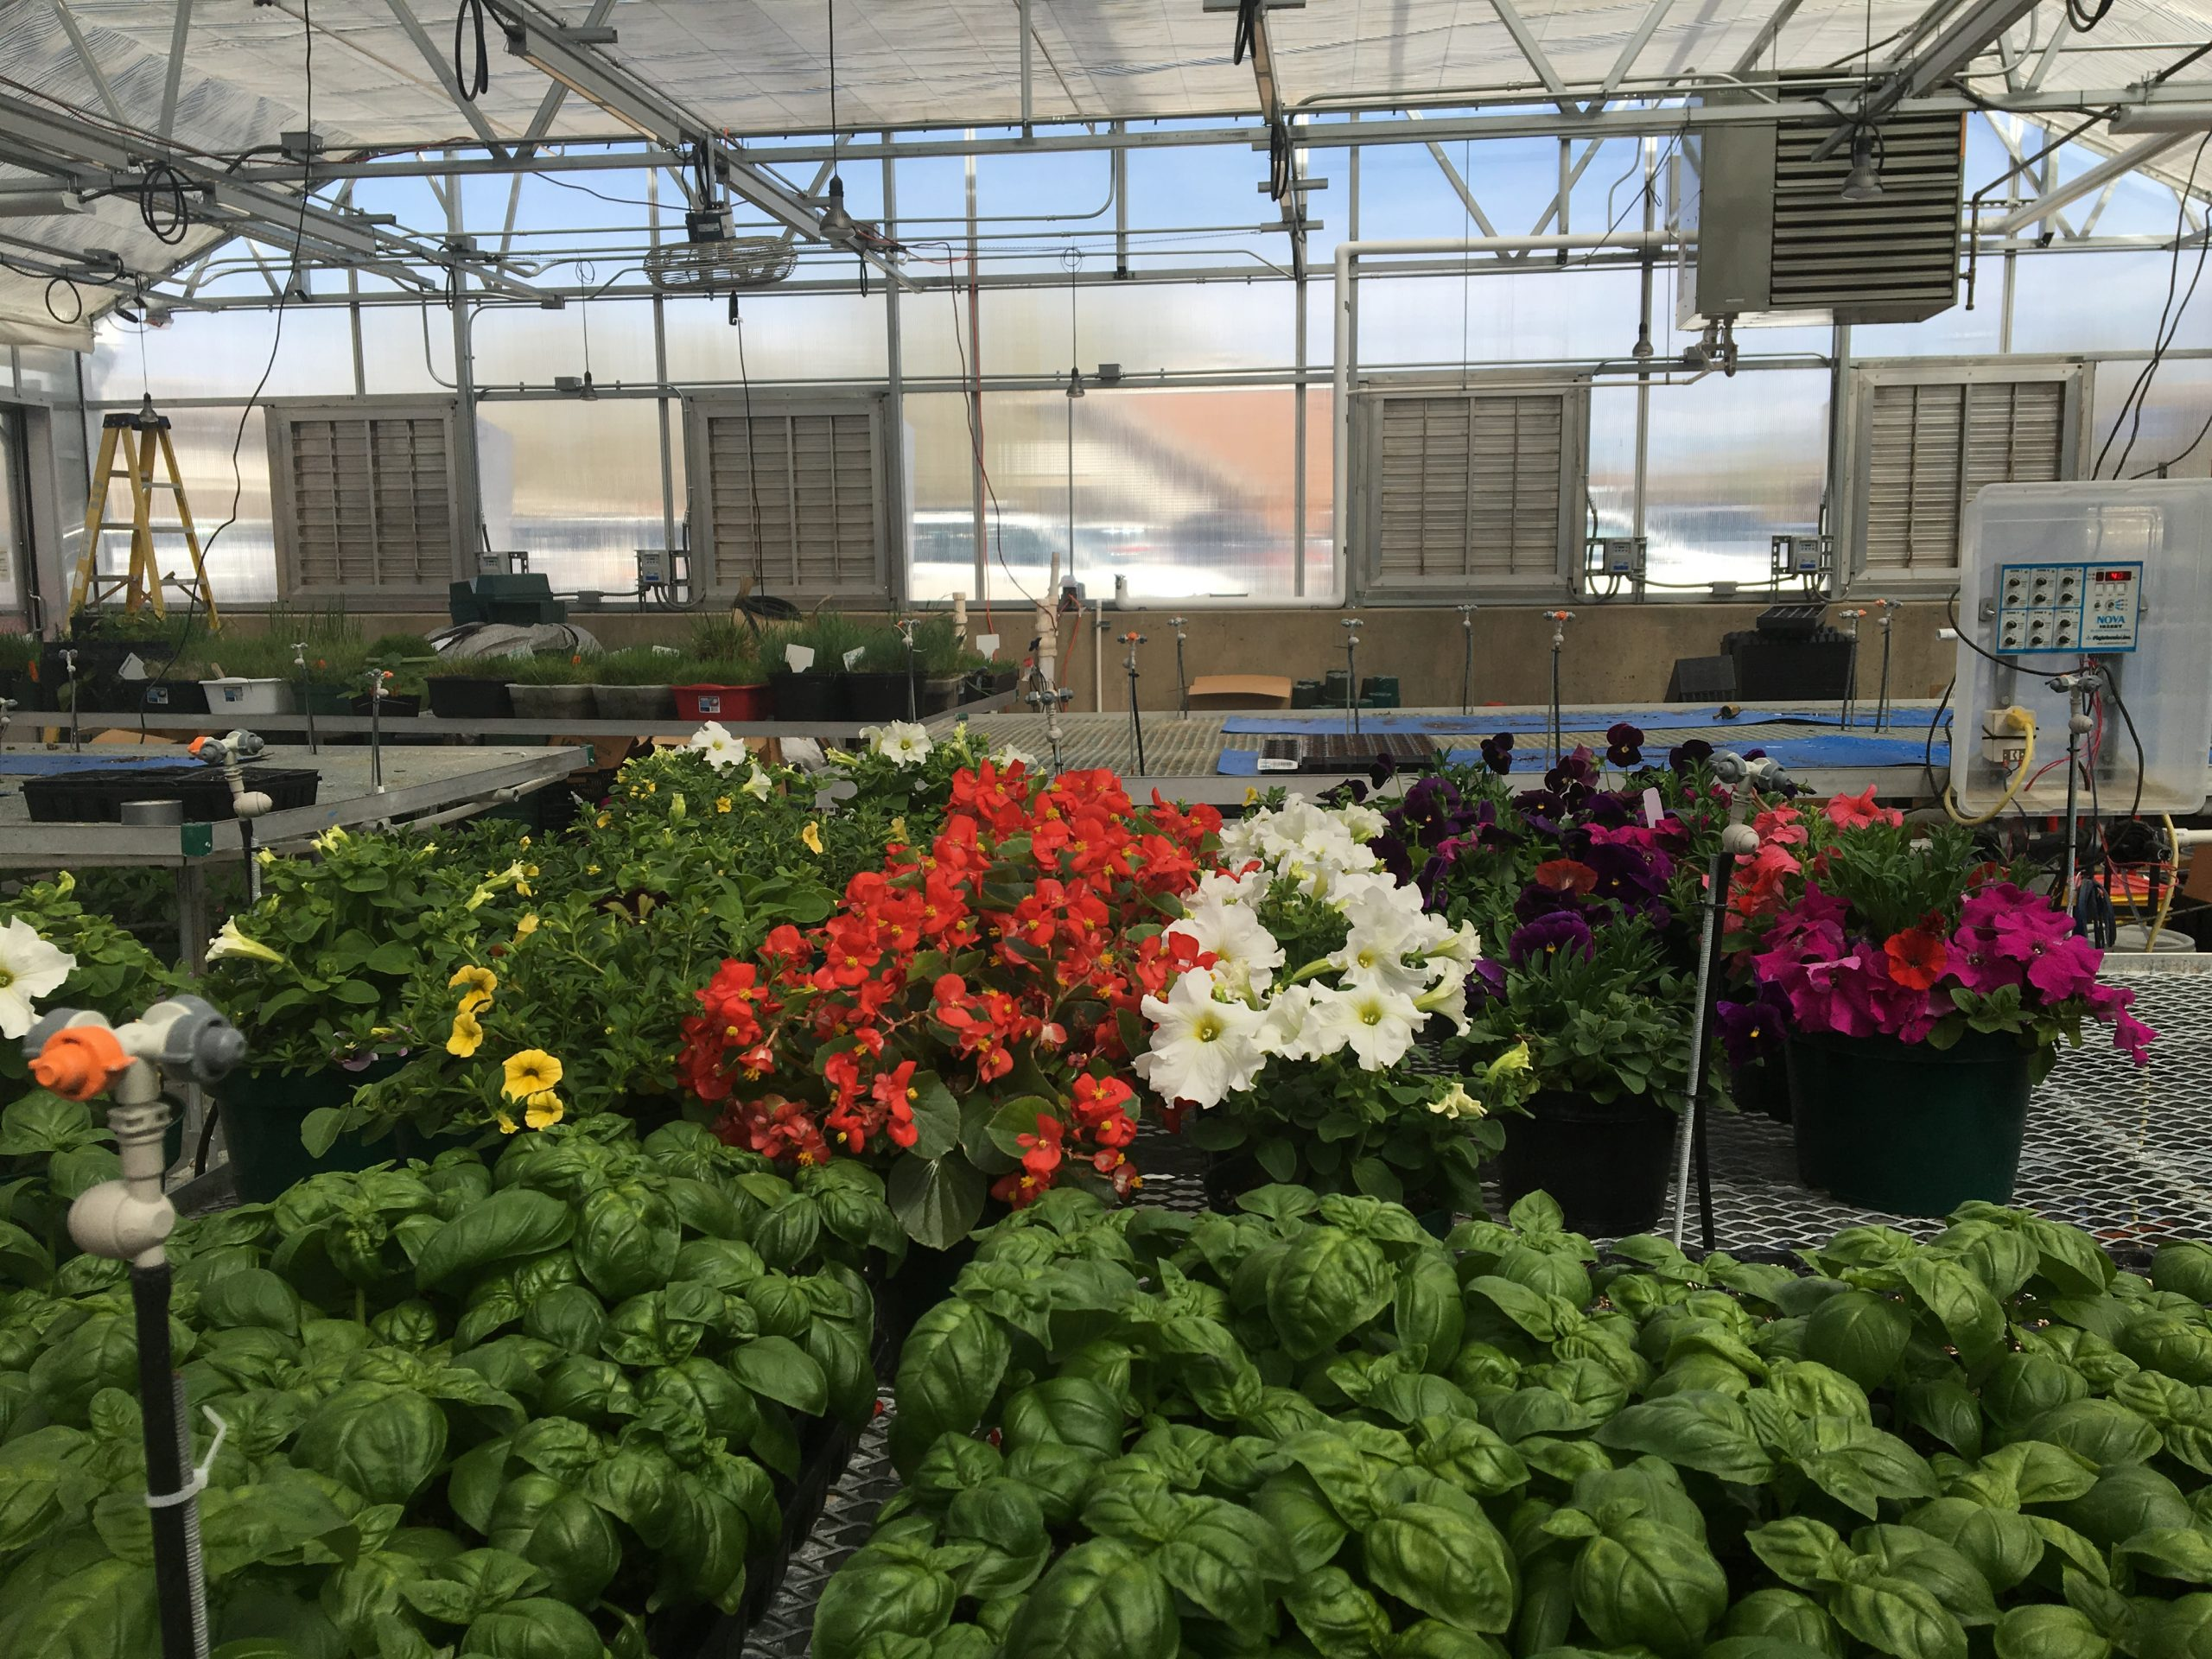 Horticulture Center Adds To Beauty And Health Of Fort Collins The Rocky Mountain Collegian